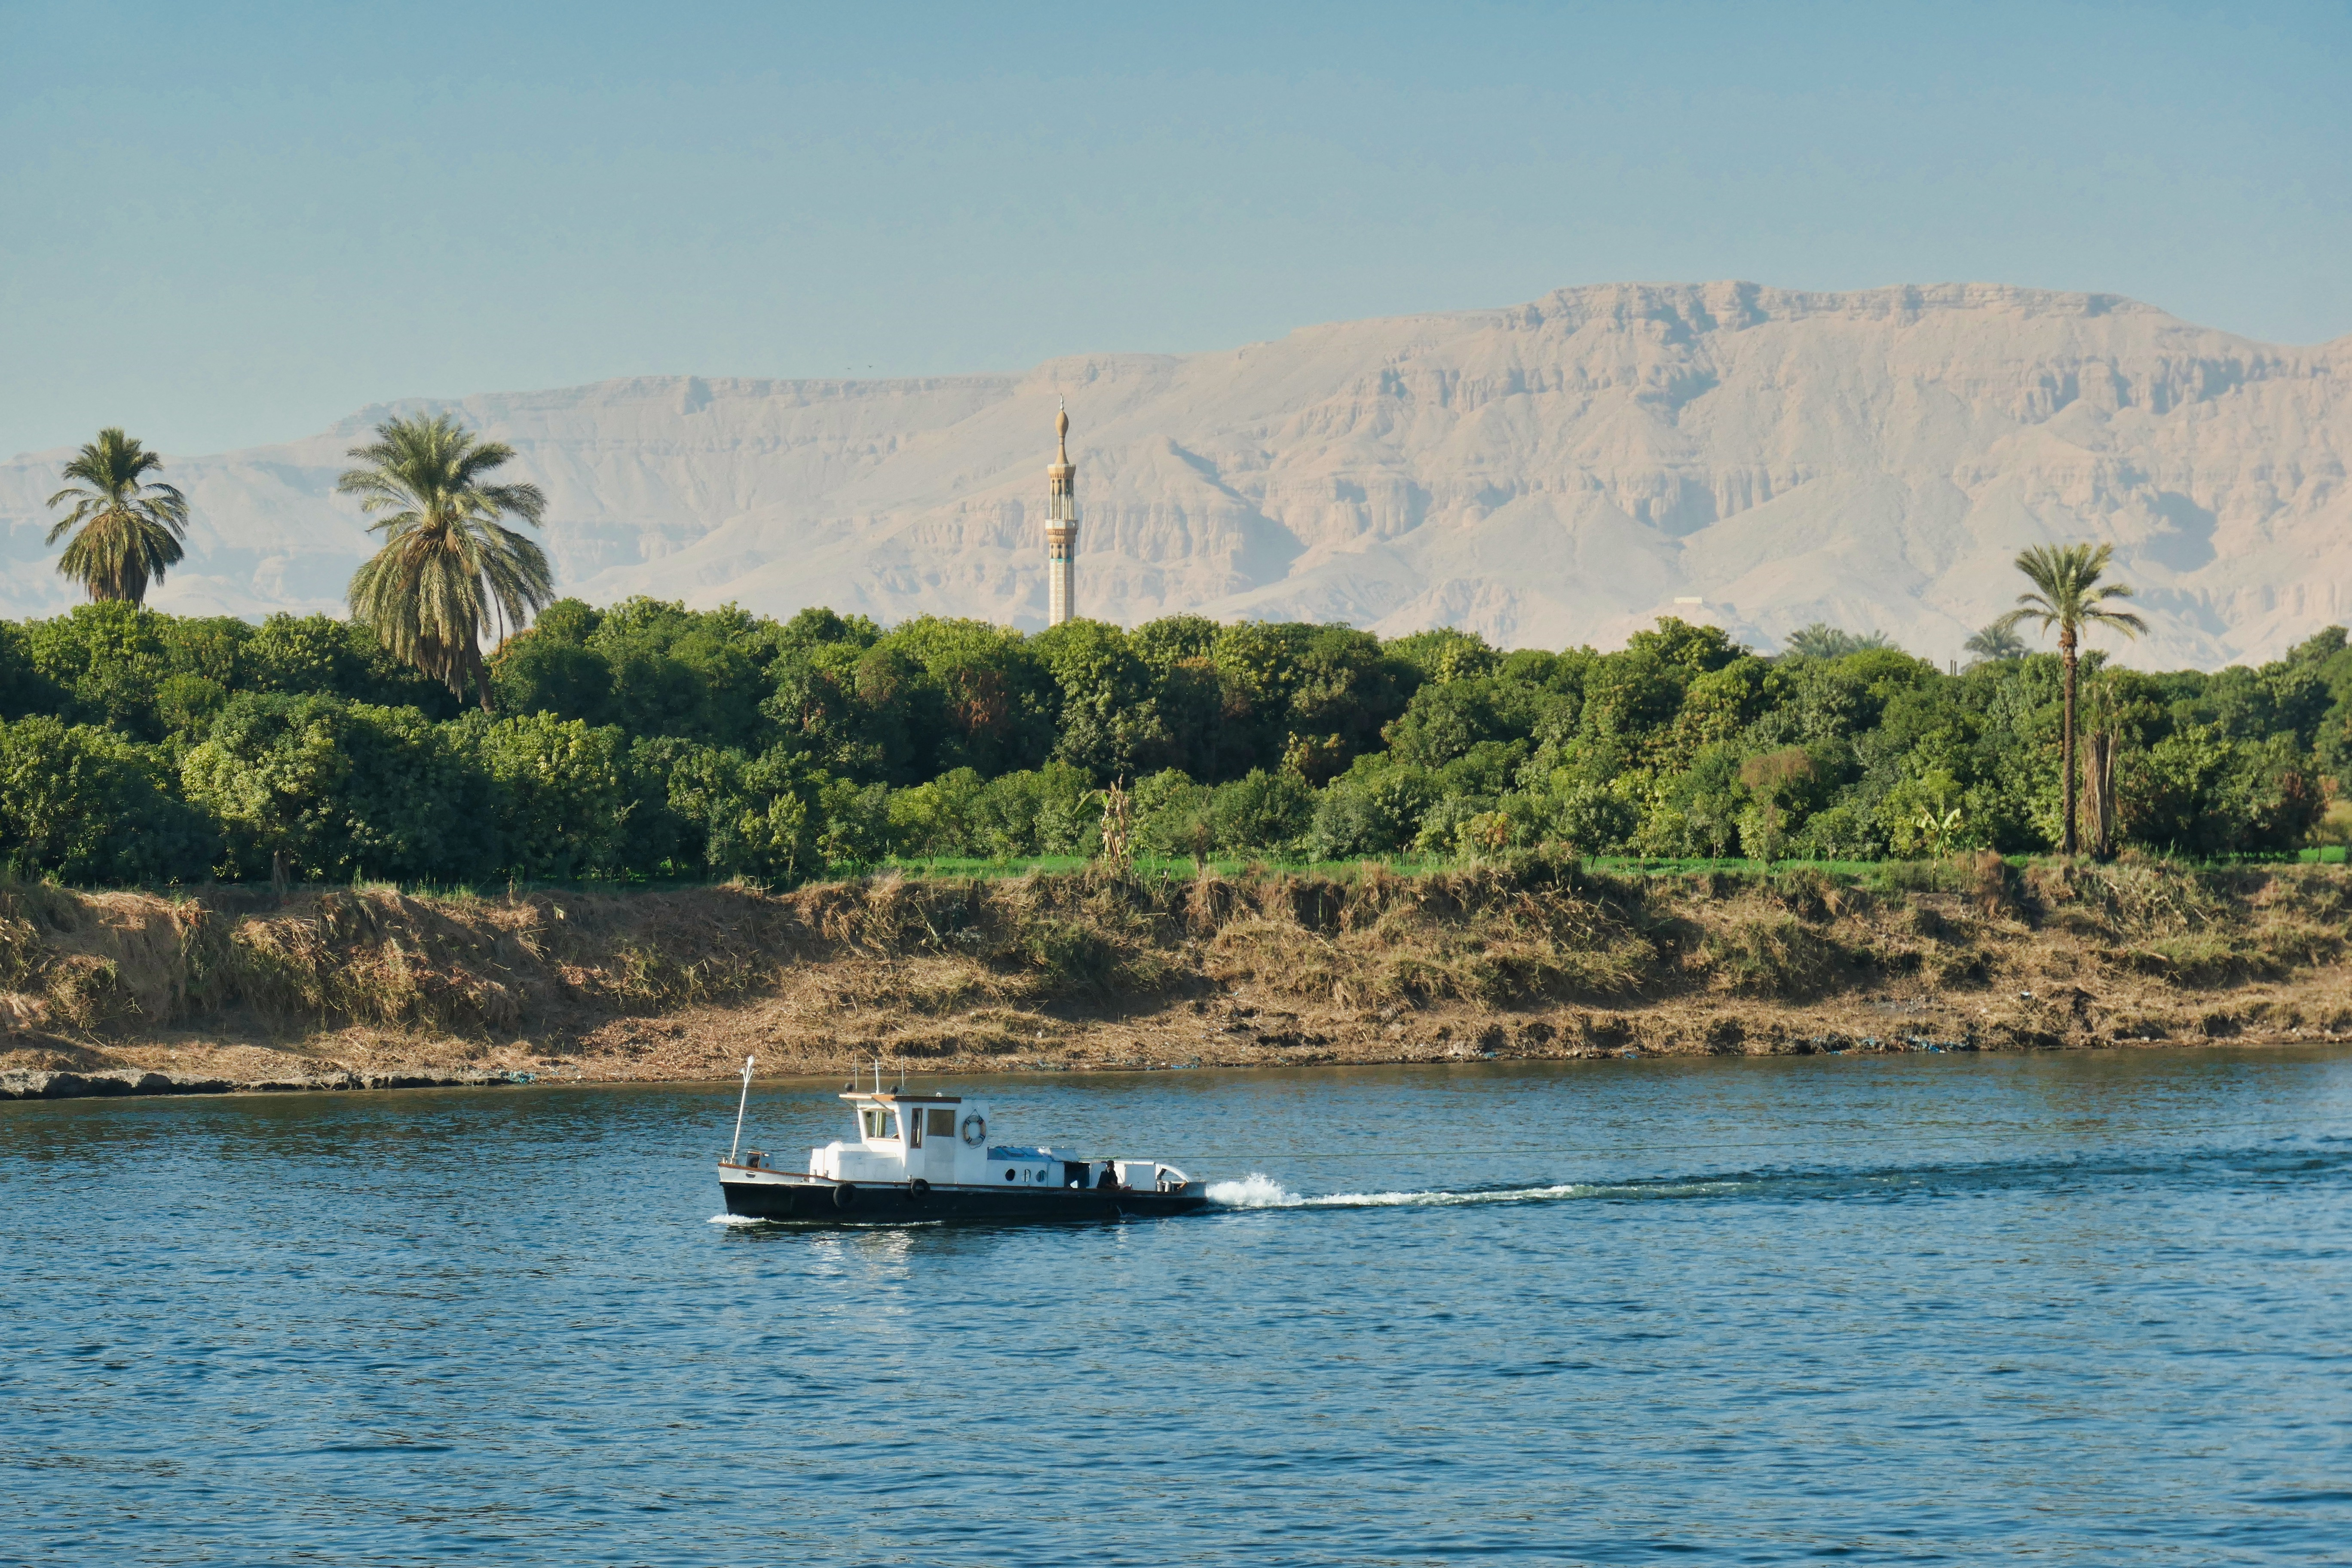 On the Nile river proceeding south from Luxor